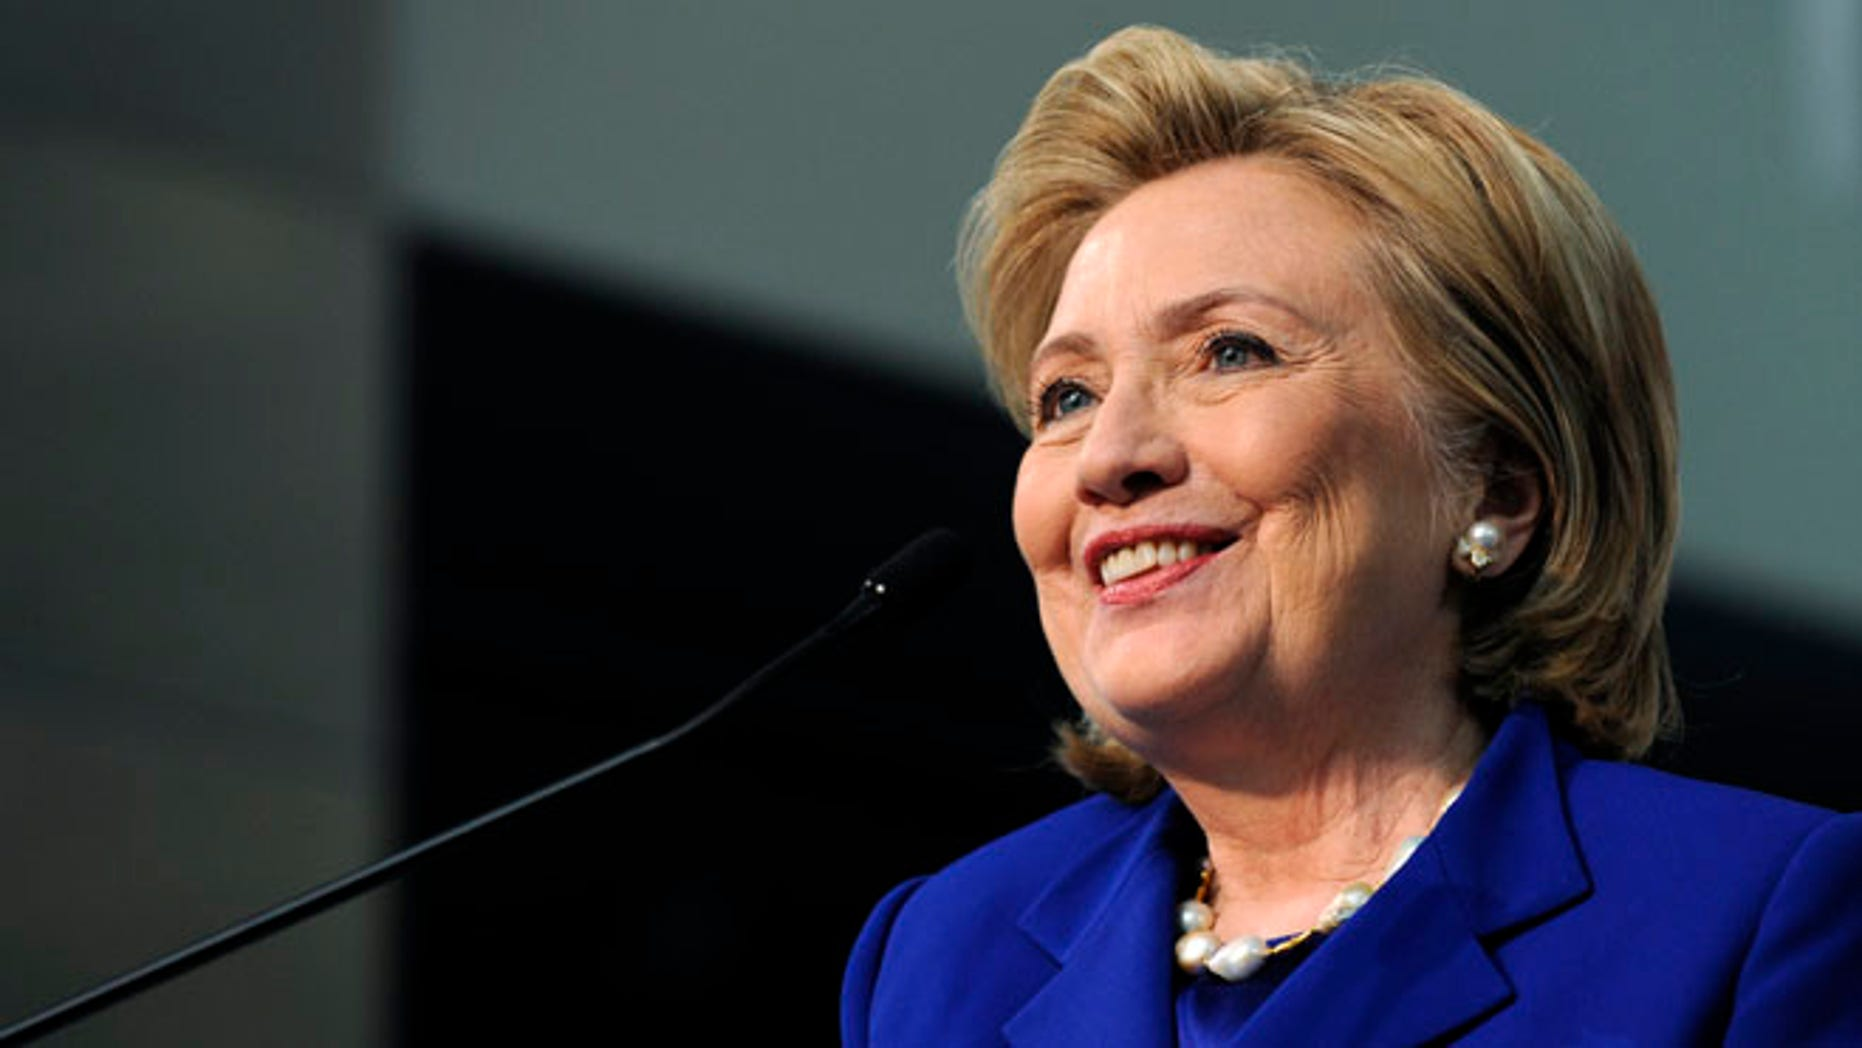 Former Secretary of State Hillary Clinton on Tuesday, June 17, 2014, during a ceremony at the Smithsonian's National Museum of American History in Washington.